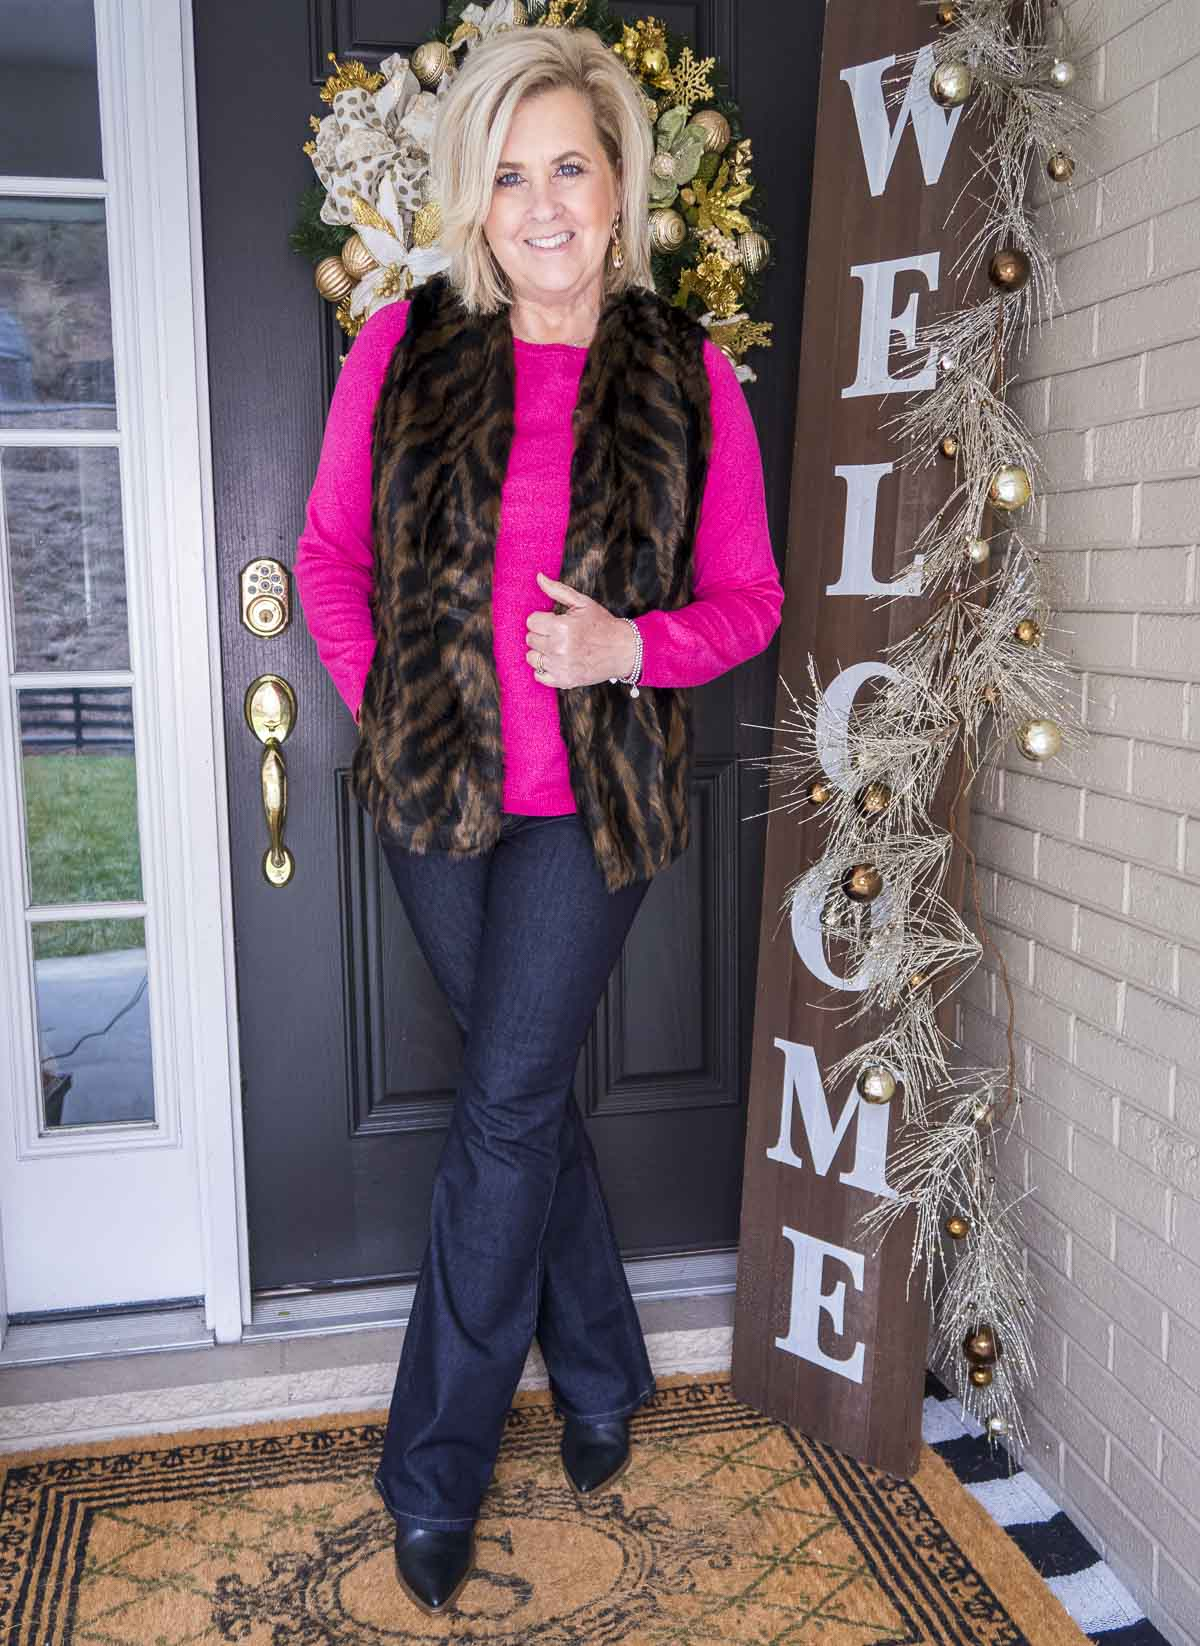 Over 40 Fashion Blogger 50 Is Not Old is wearing a pink sweater with a tiger print faux fur vest, flare jeans, and black pointy toe boots